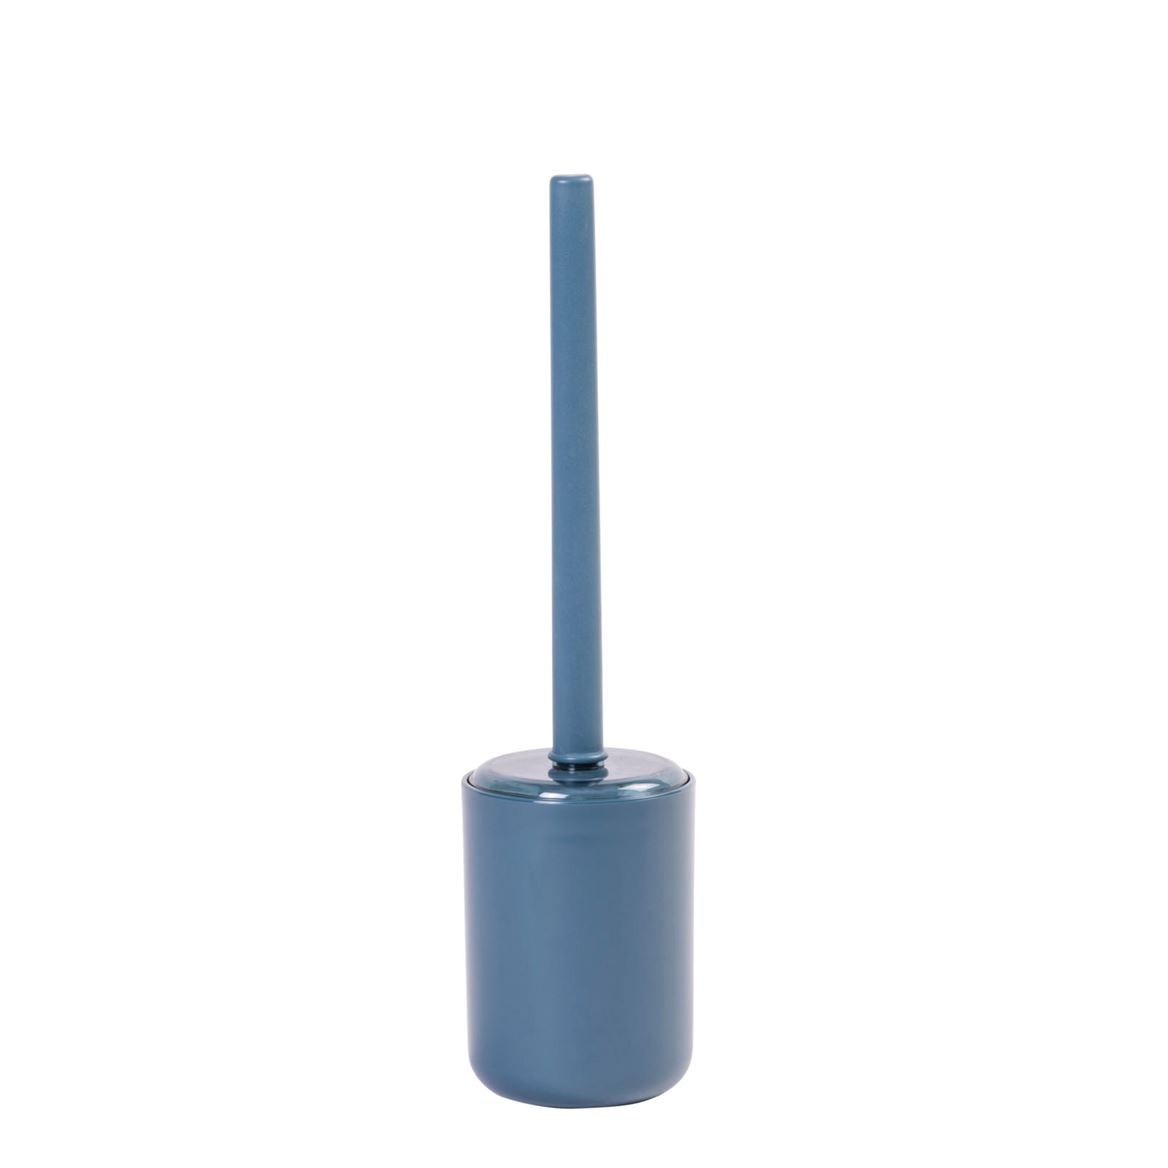 BASICO Balayette WC avec support 3 couleurs gris, bleu, menthe H 36,5 cm; Ø 9 cm_basico-balayette-wc-avec-support-3-couleurs-gris,-bleu,-menthe-h-36,5-cm;-ø-9-cm